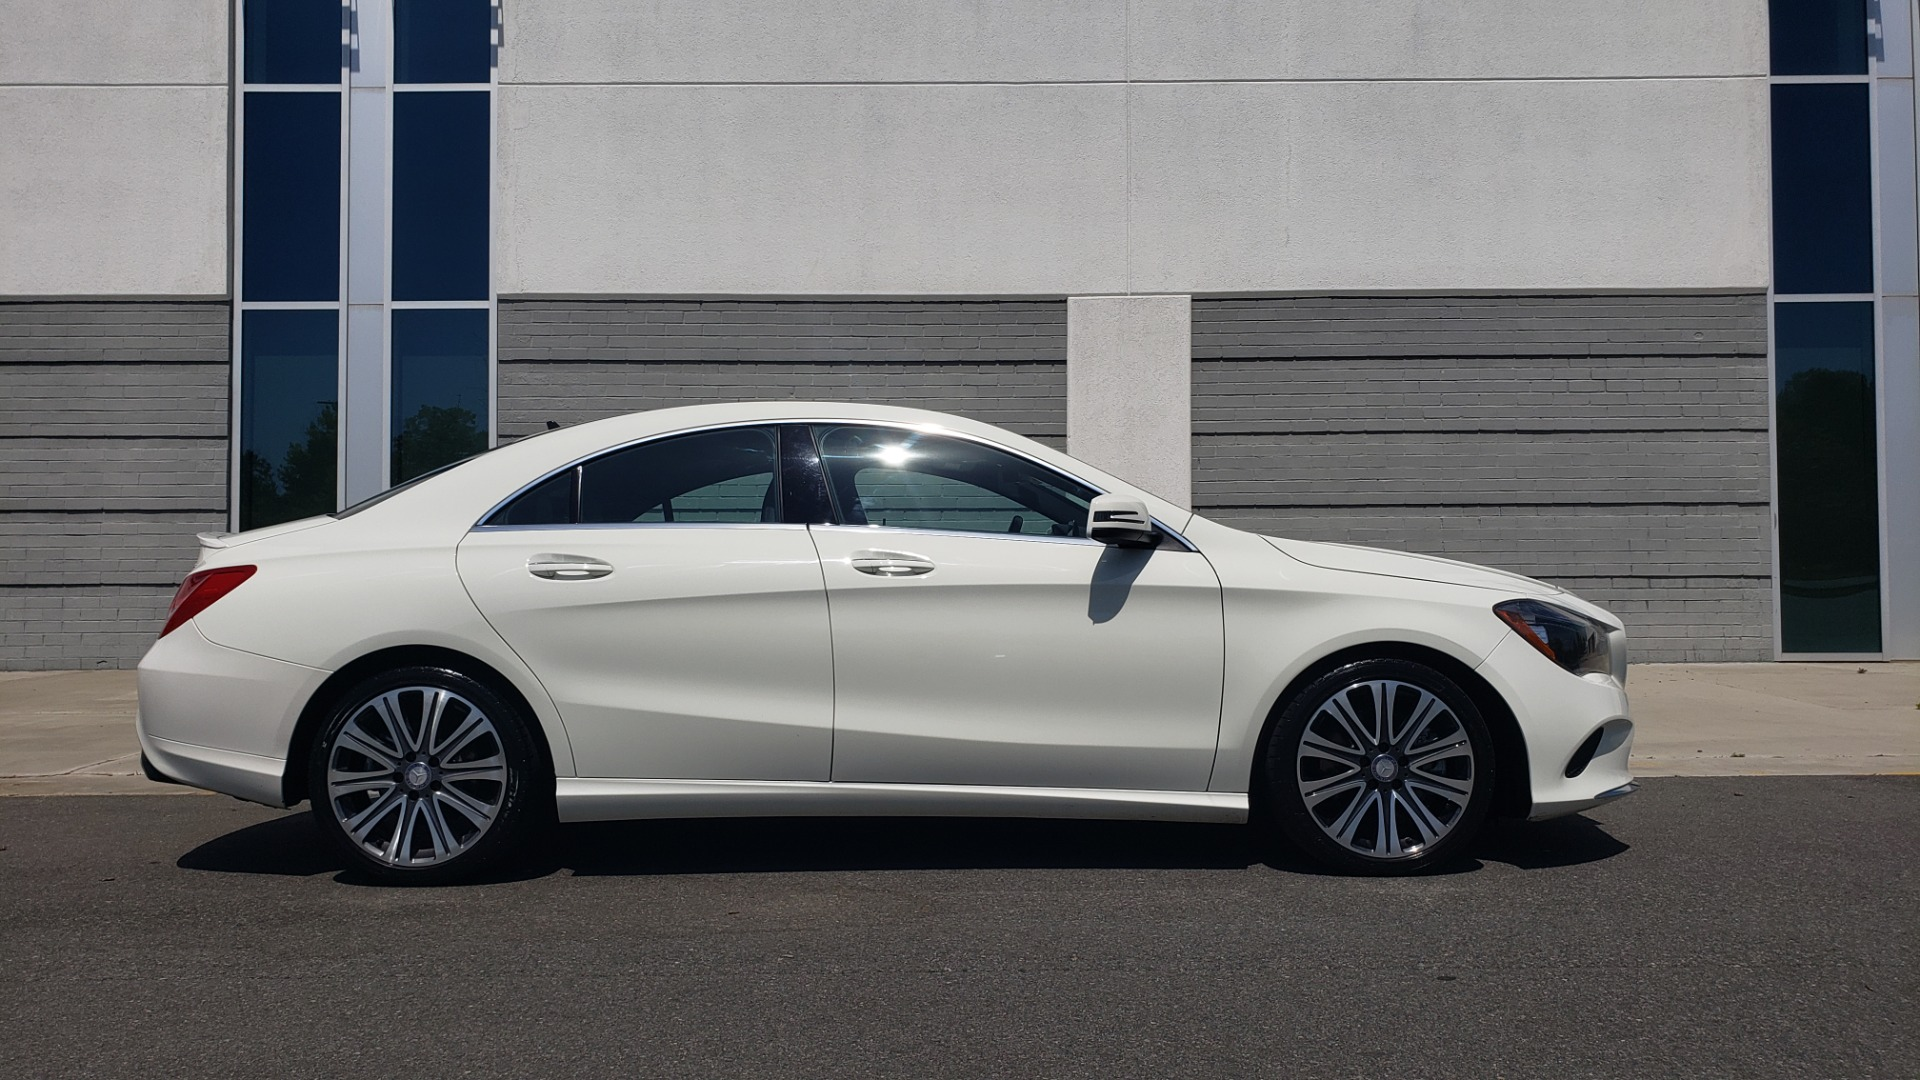 Used 2018 Mercedes-Benz CLA 250 4MATIC PREMIUM / PANO-ROOF / CONV PKG / APPLE / REARVIEW for sale $25,395 at Formula Imports in Charlotte NC 28227 7